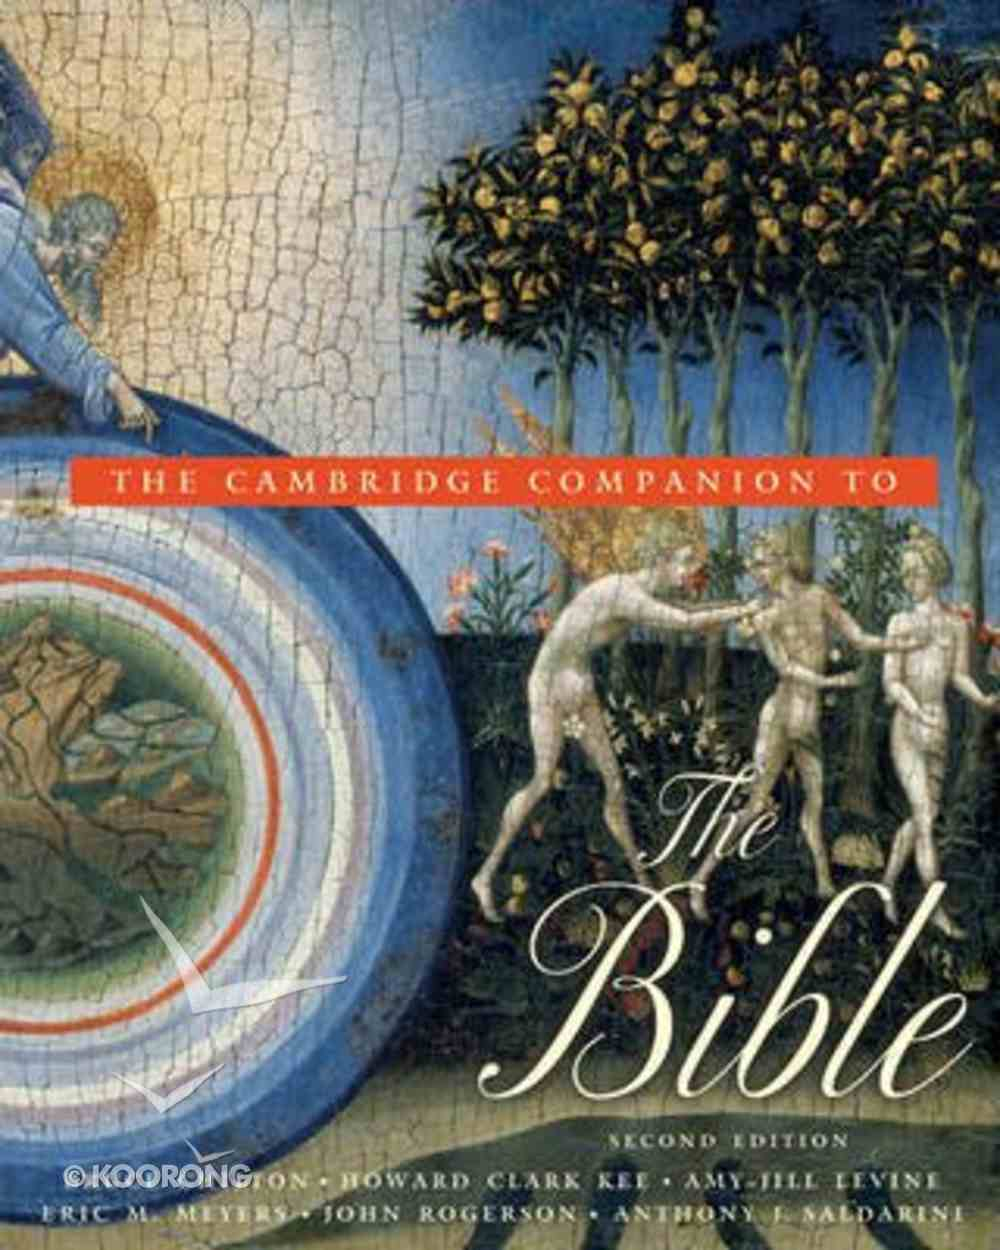 The Cambridge Companion to the Bible (2nd Edition) Paperback